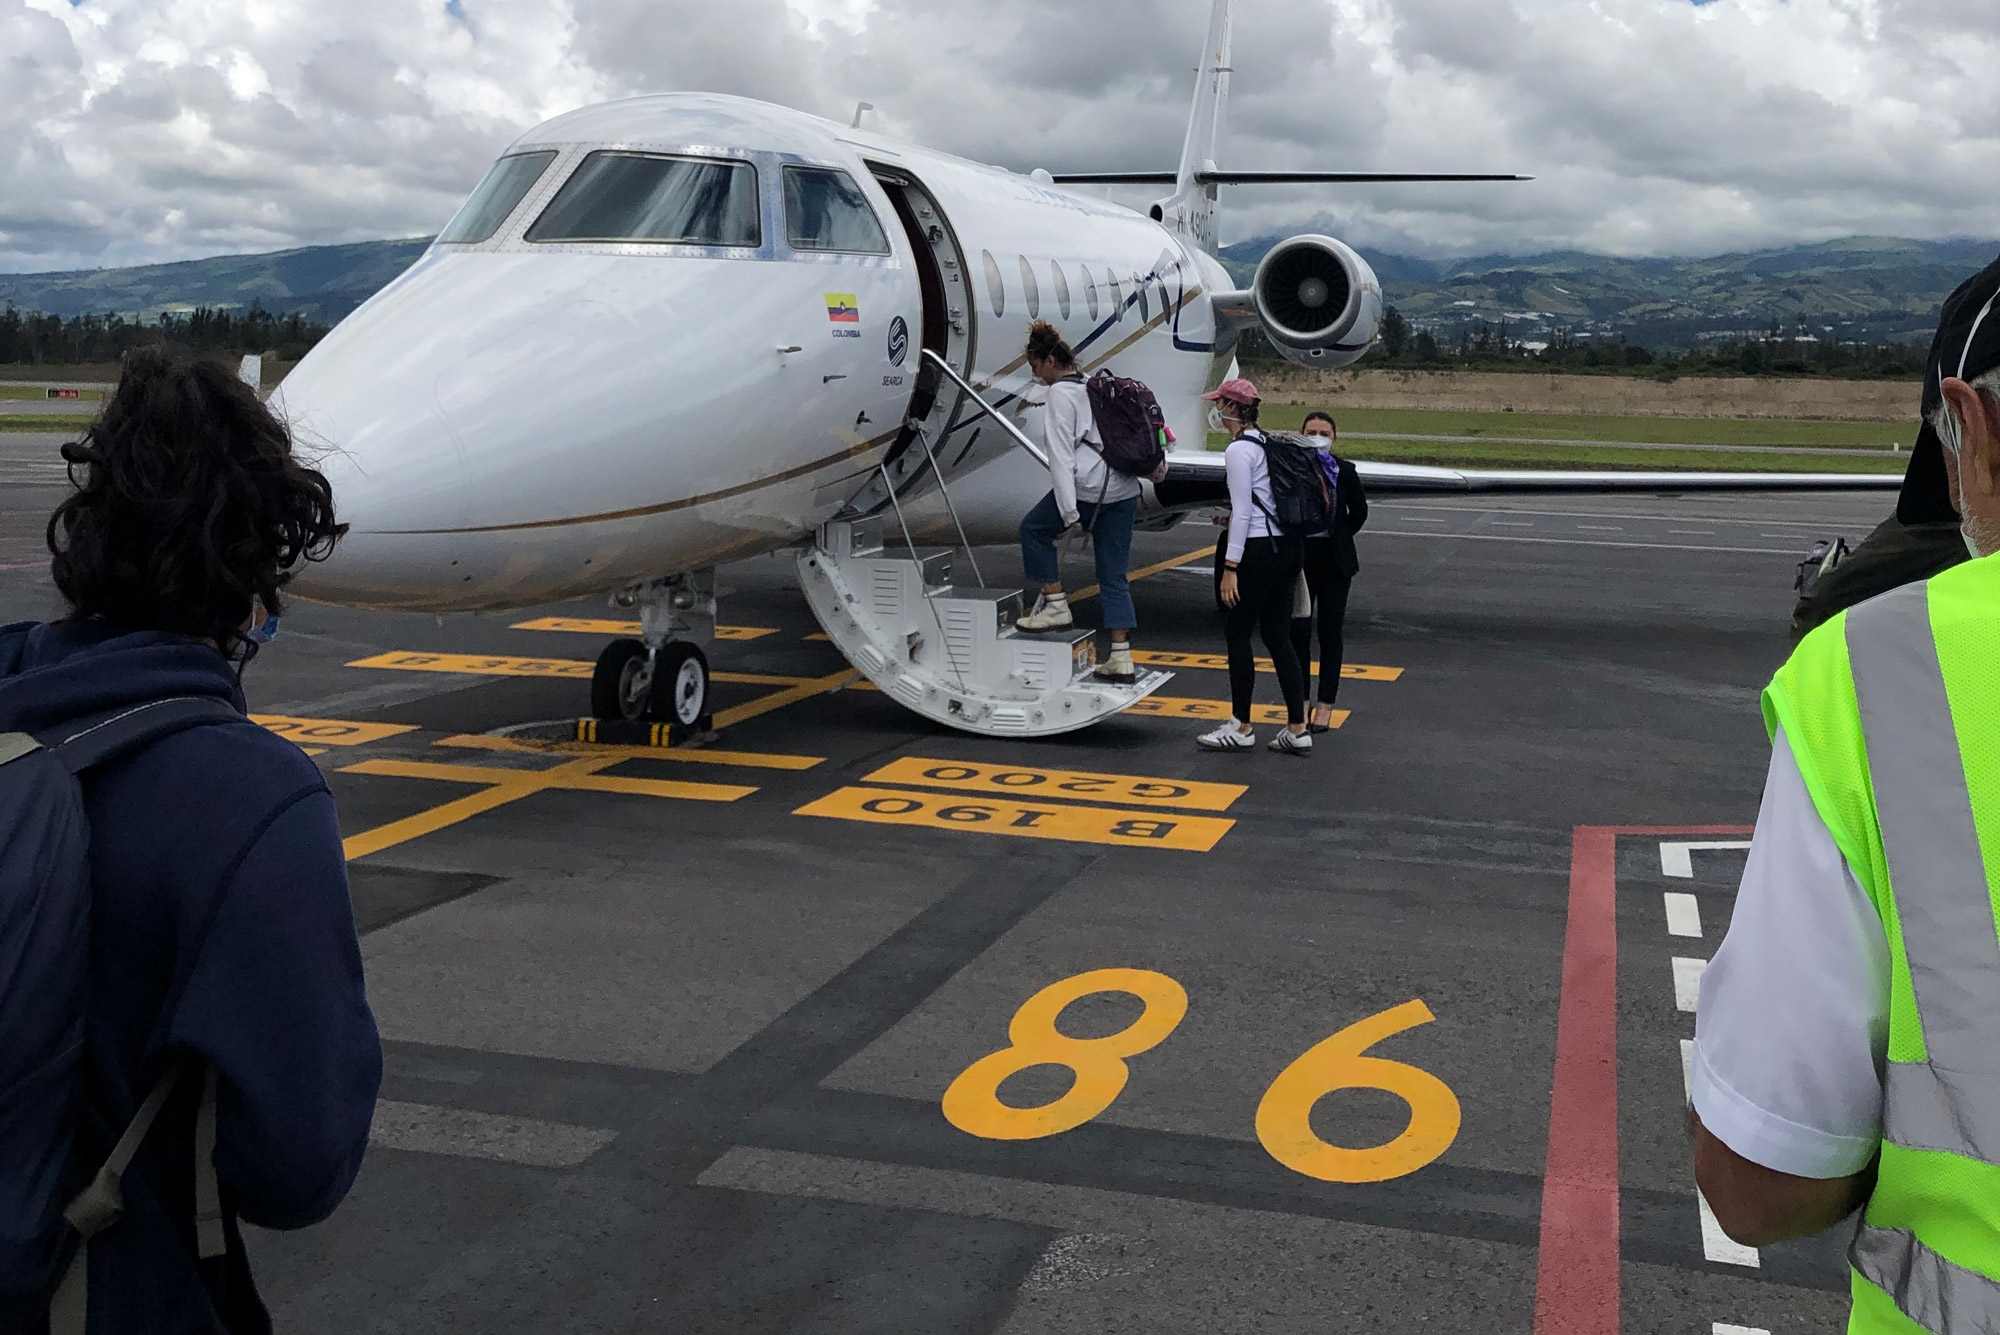 Students on BU's Study Abroad in Quito, Ecuador boarded a chartered flight home after a frantic week of trying to depart.